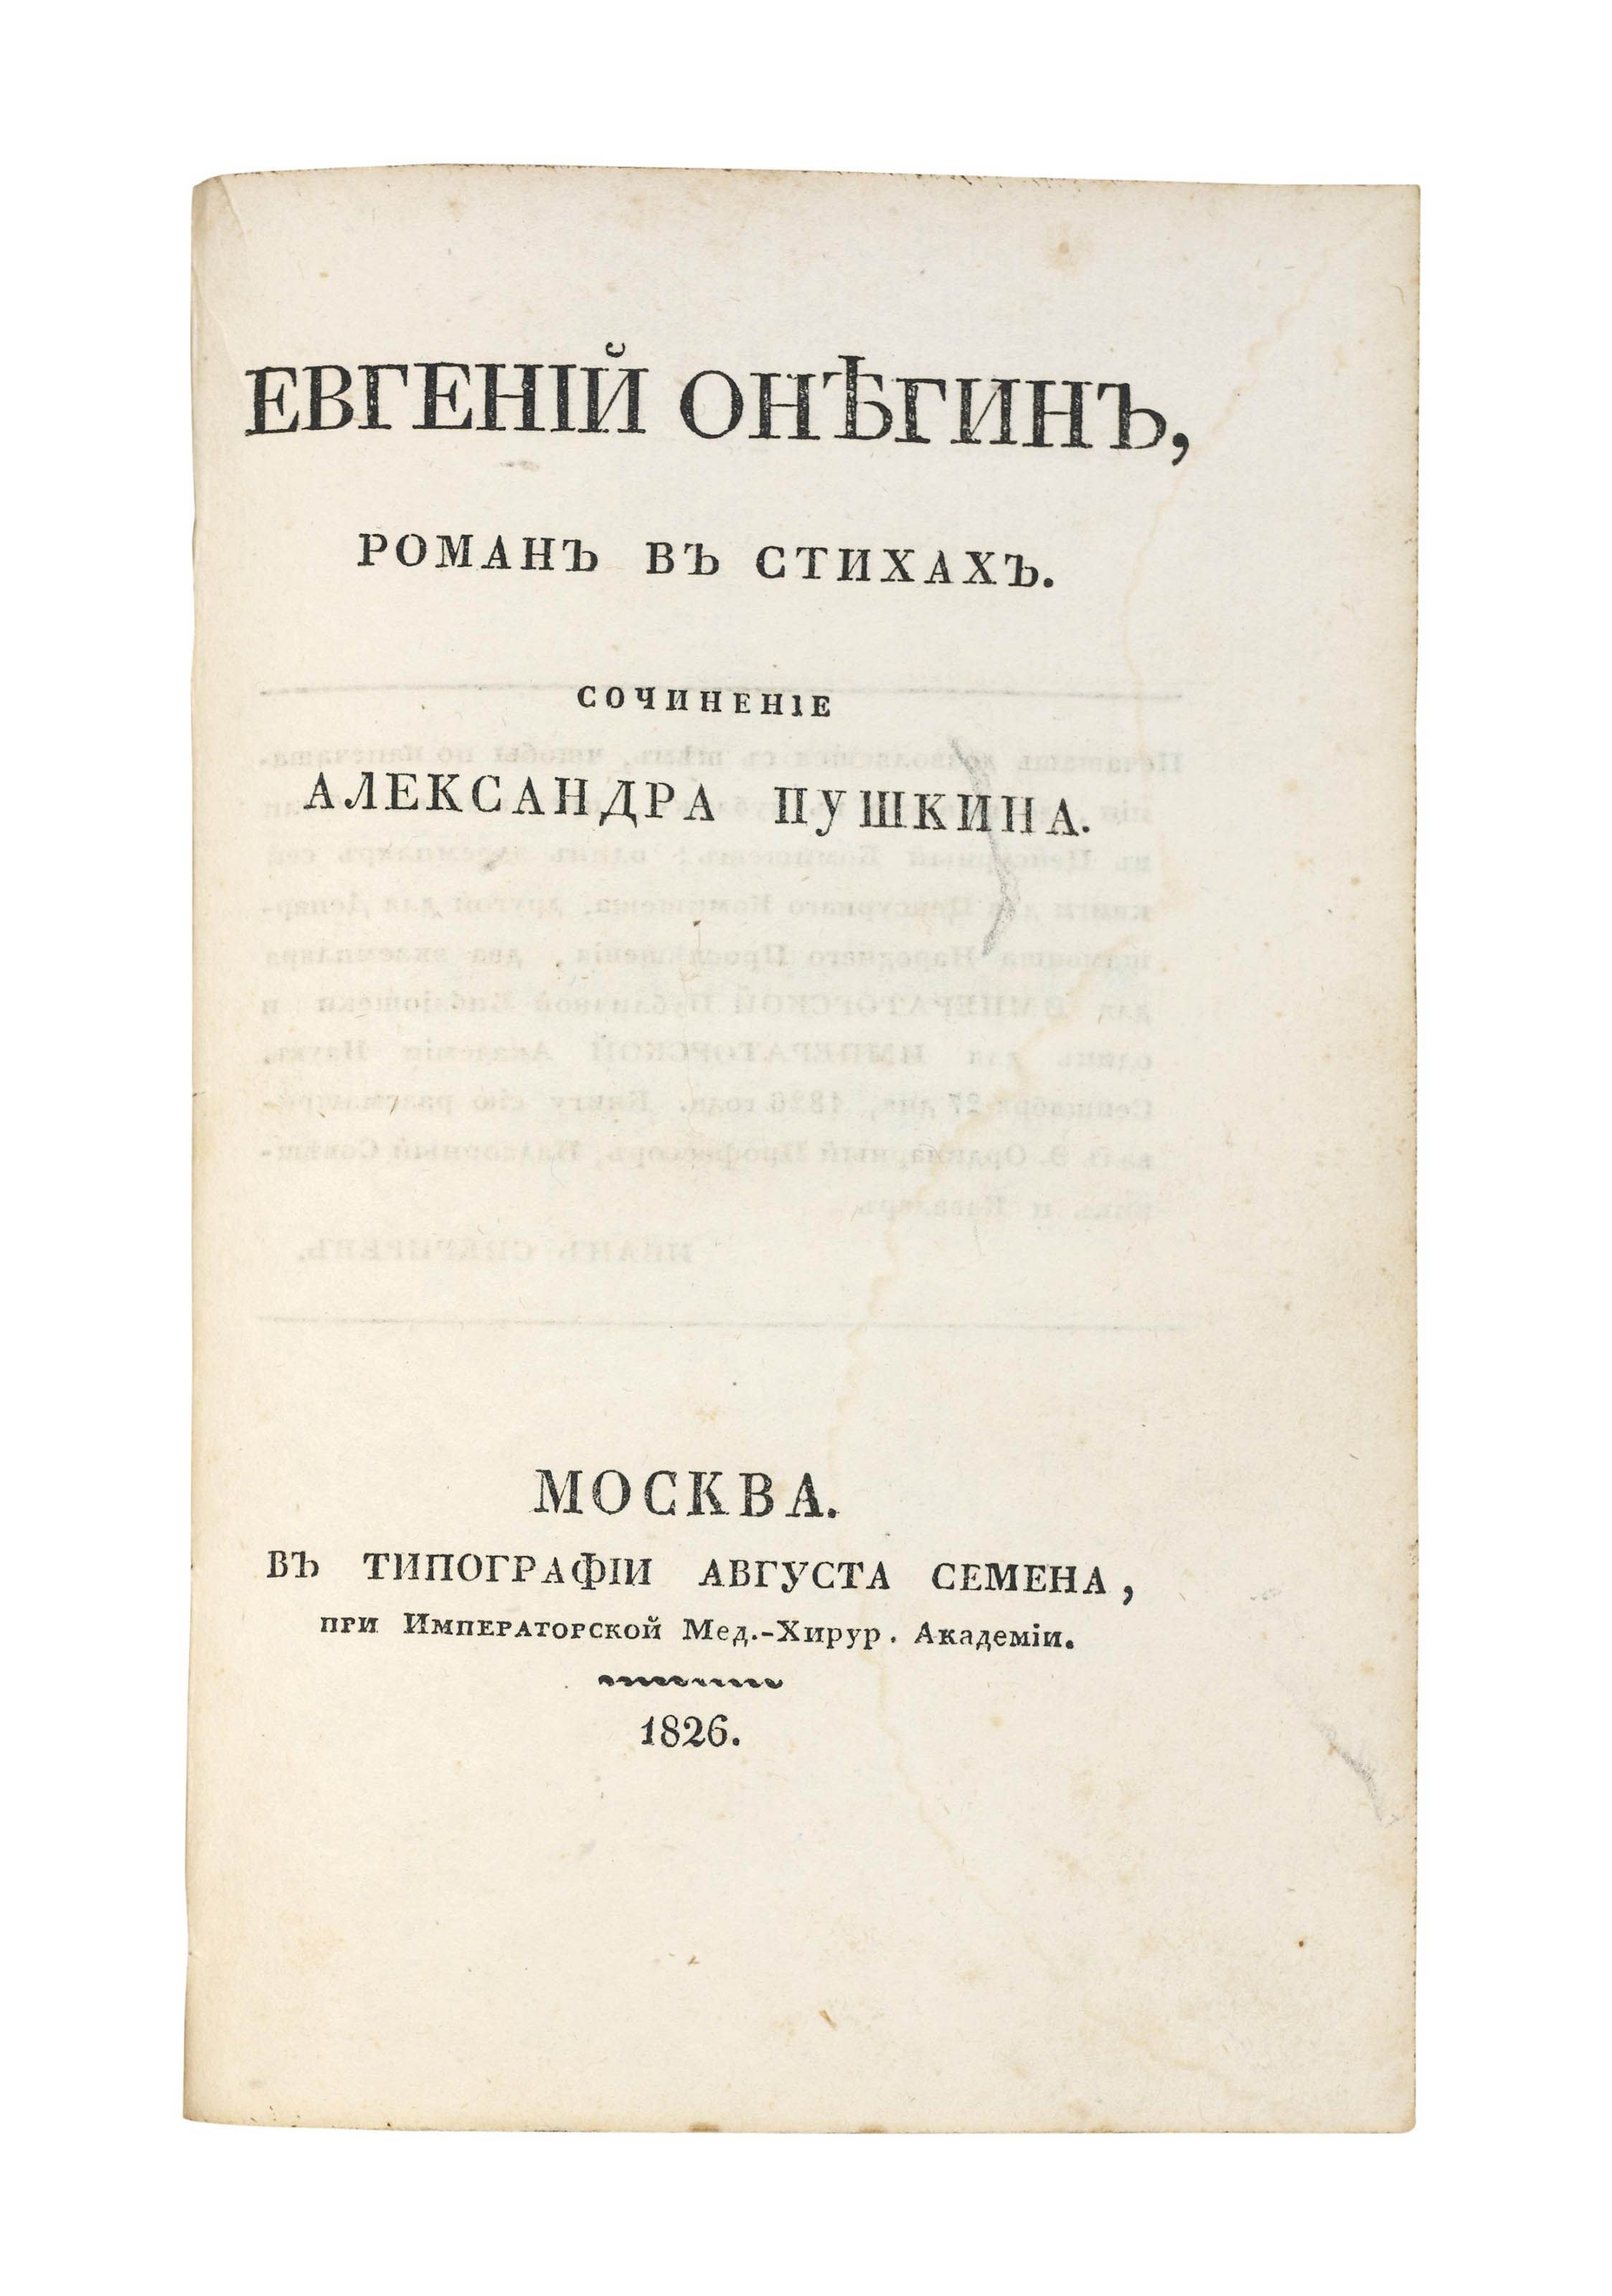 PUSHKIN, Aleksandr Sergeevich (1799-1837). Evgenii Onegin. Roman v stikhakh. Gl. 1-2. [Eugene Onegin. A novel in verse. Chapters 1 and 2.] St. Petersburg: at the press of the Department of Public Instruction, 1825; and Moscow: Avgust Semen, 1826.